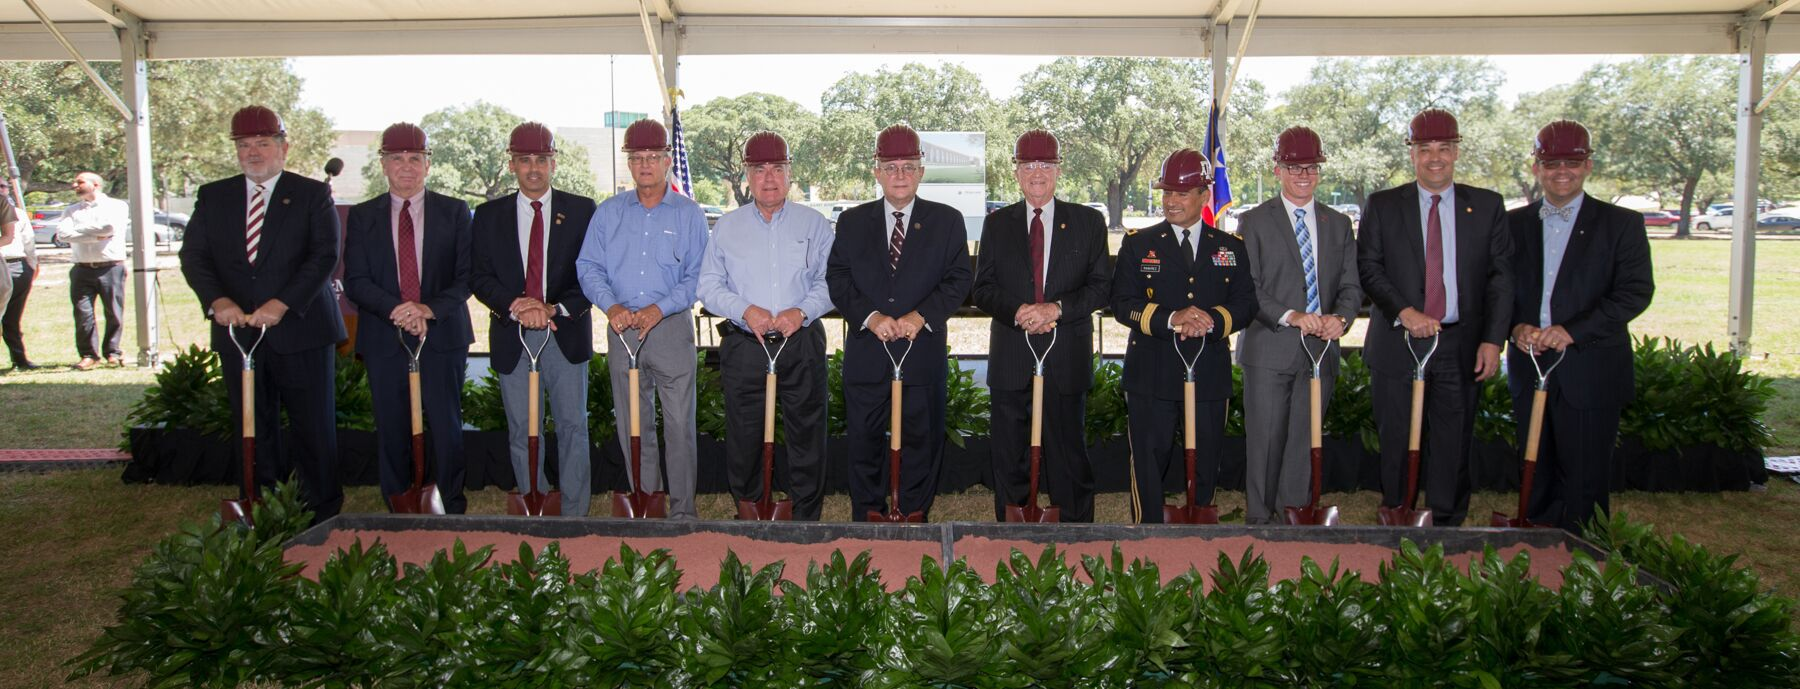 Many of the leaders who helped to make the new $40 million John D. White '70 – Robert L. Walker '58 Music Activities Center a reality at Texas A&M line up to break ground on the project.